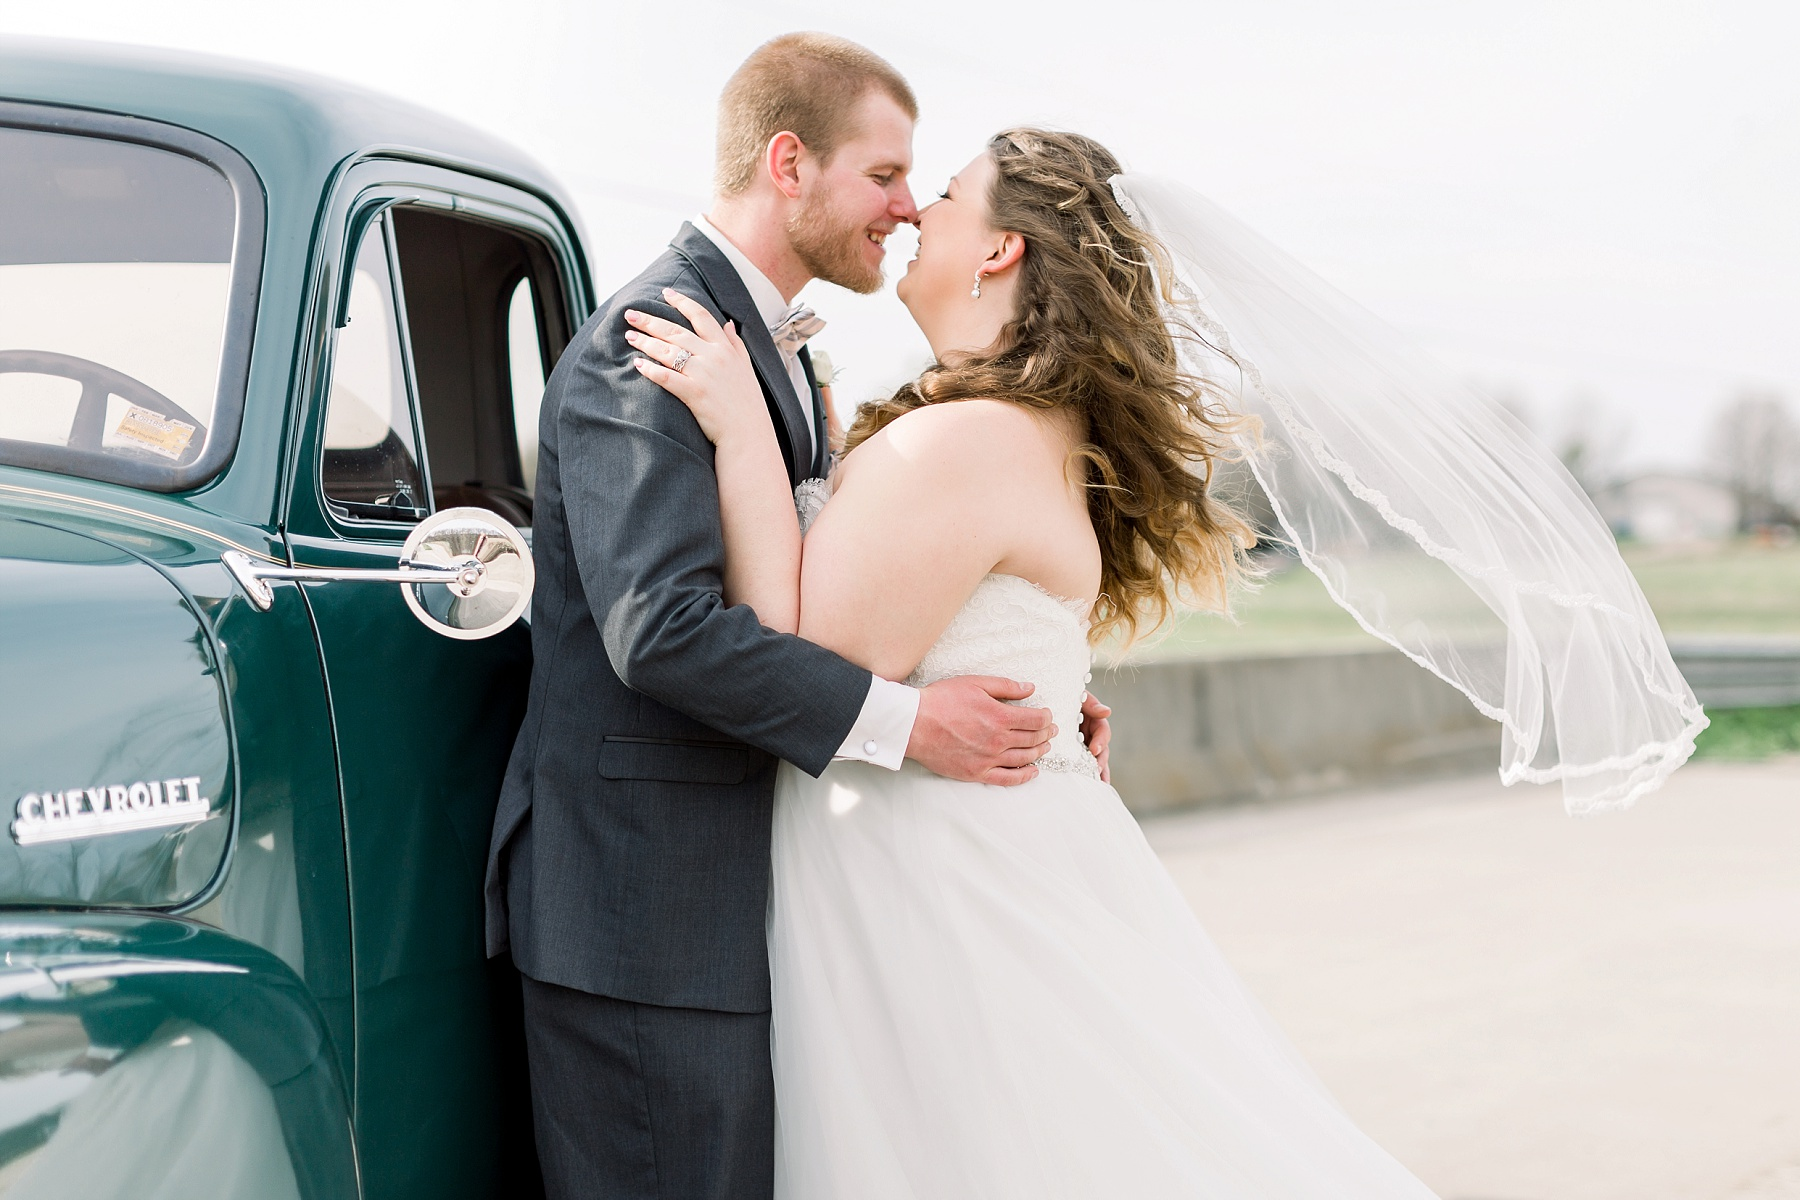 adventurous-authentic-wedding-engagement-photography-kansas-city-elizabeth-ladean-photo_5445.jpg